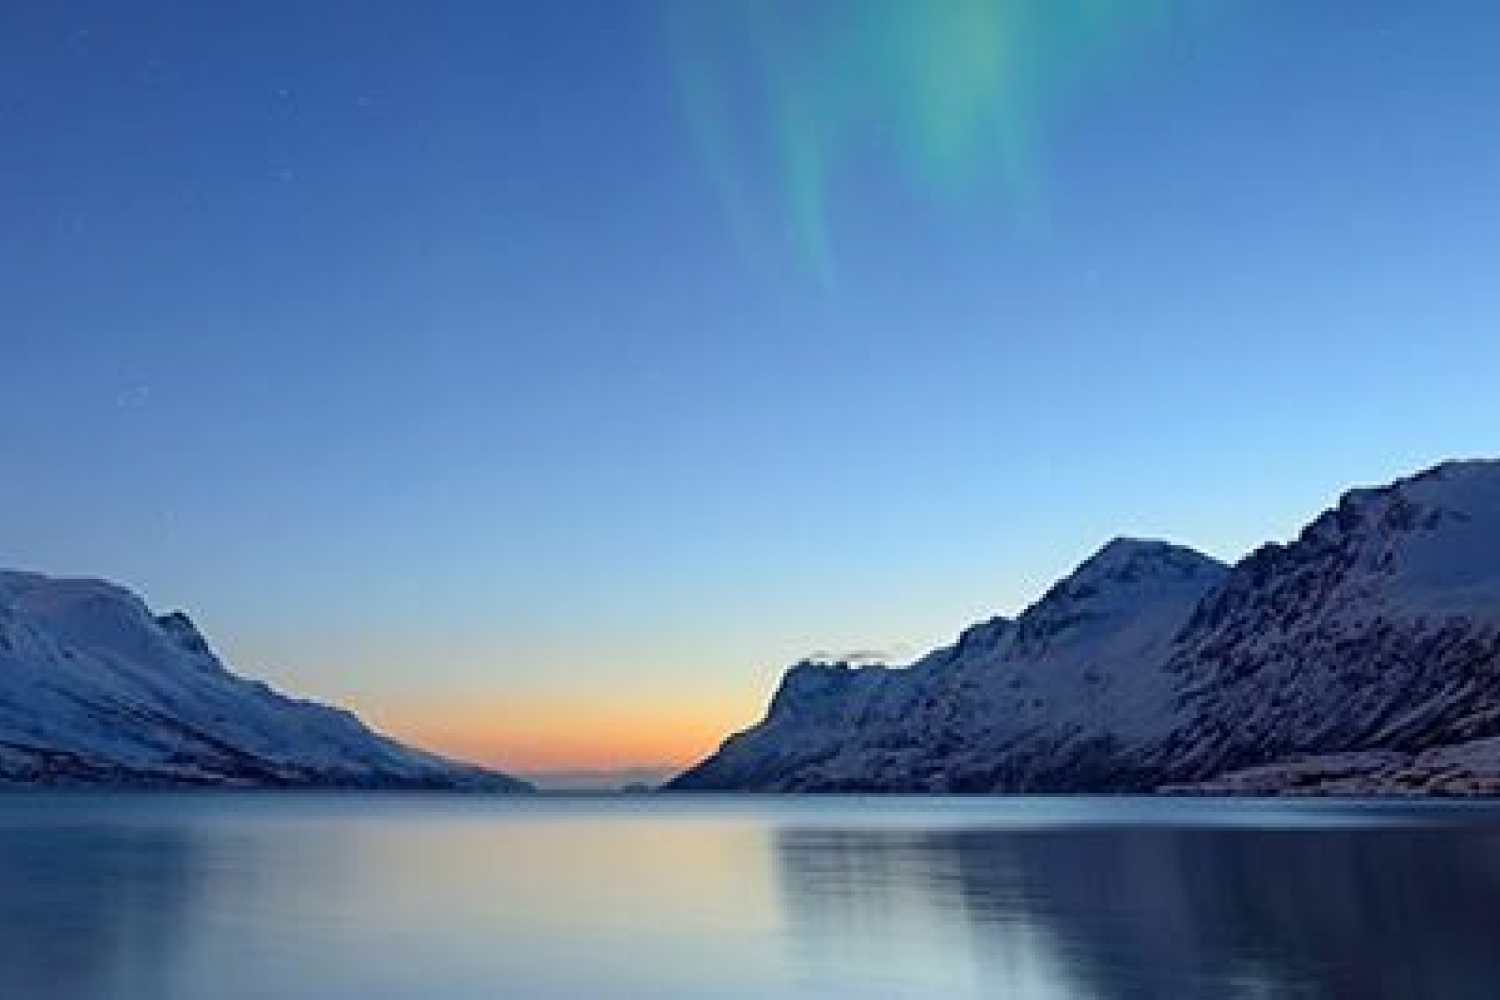 Fjord with silent ocean, snowy mountains and light from the sun below the horizon